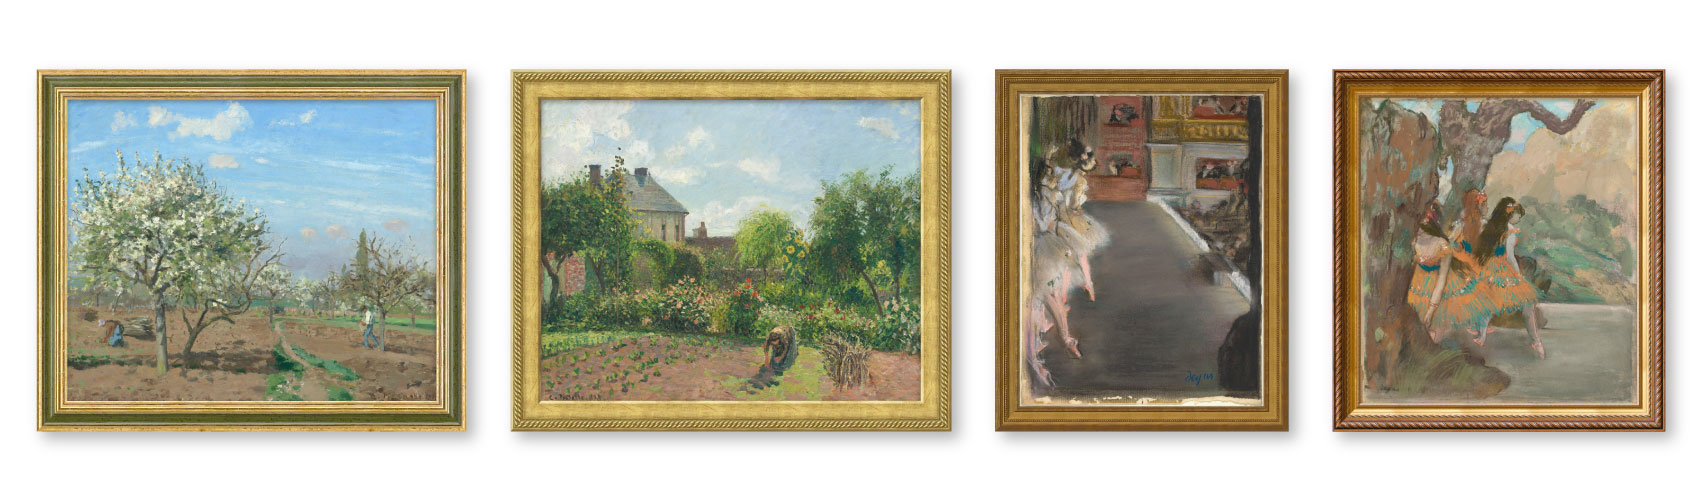 Artworks produced by Pissarro and Degas